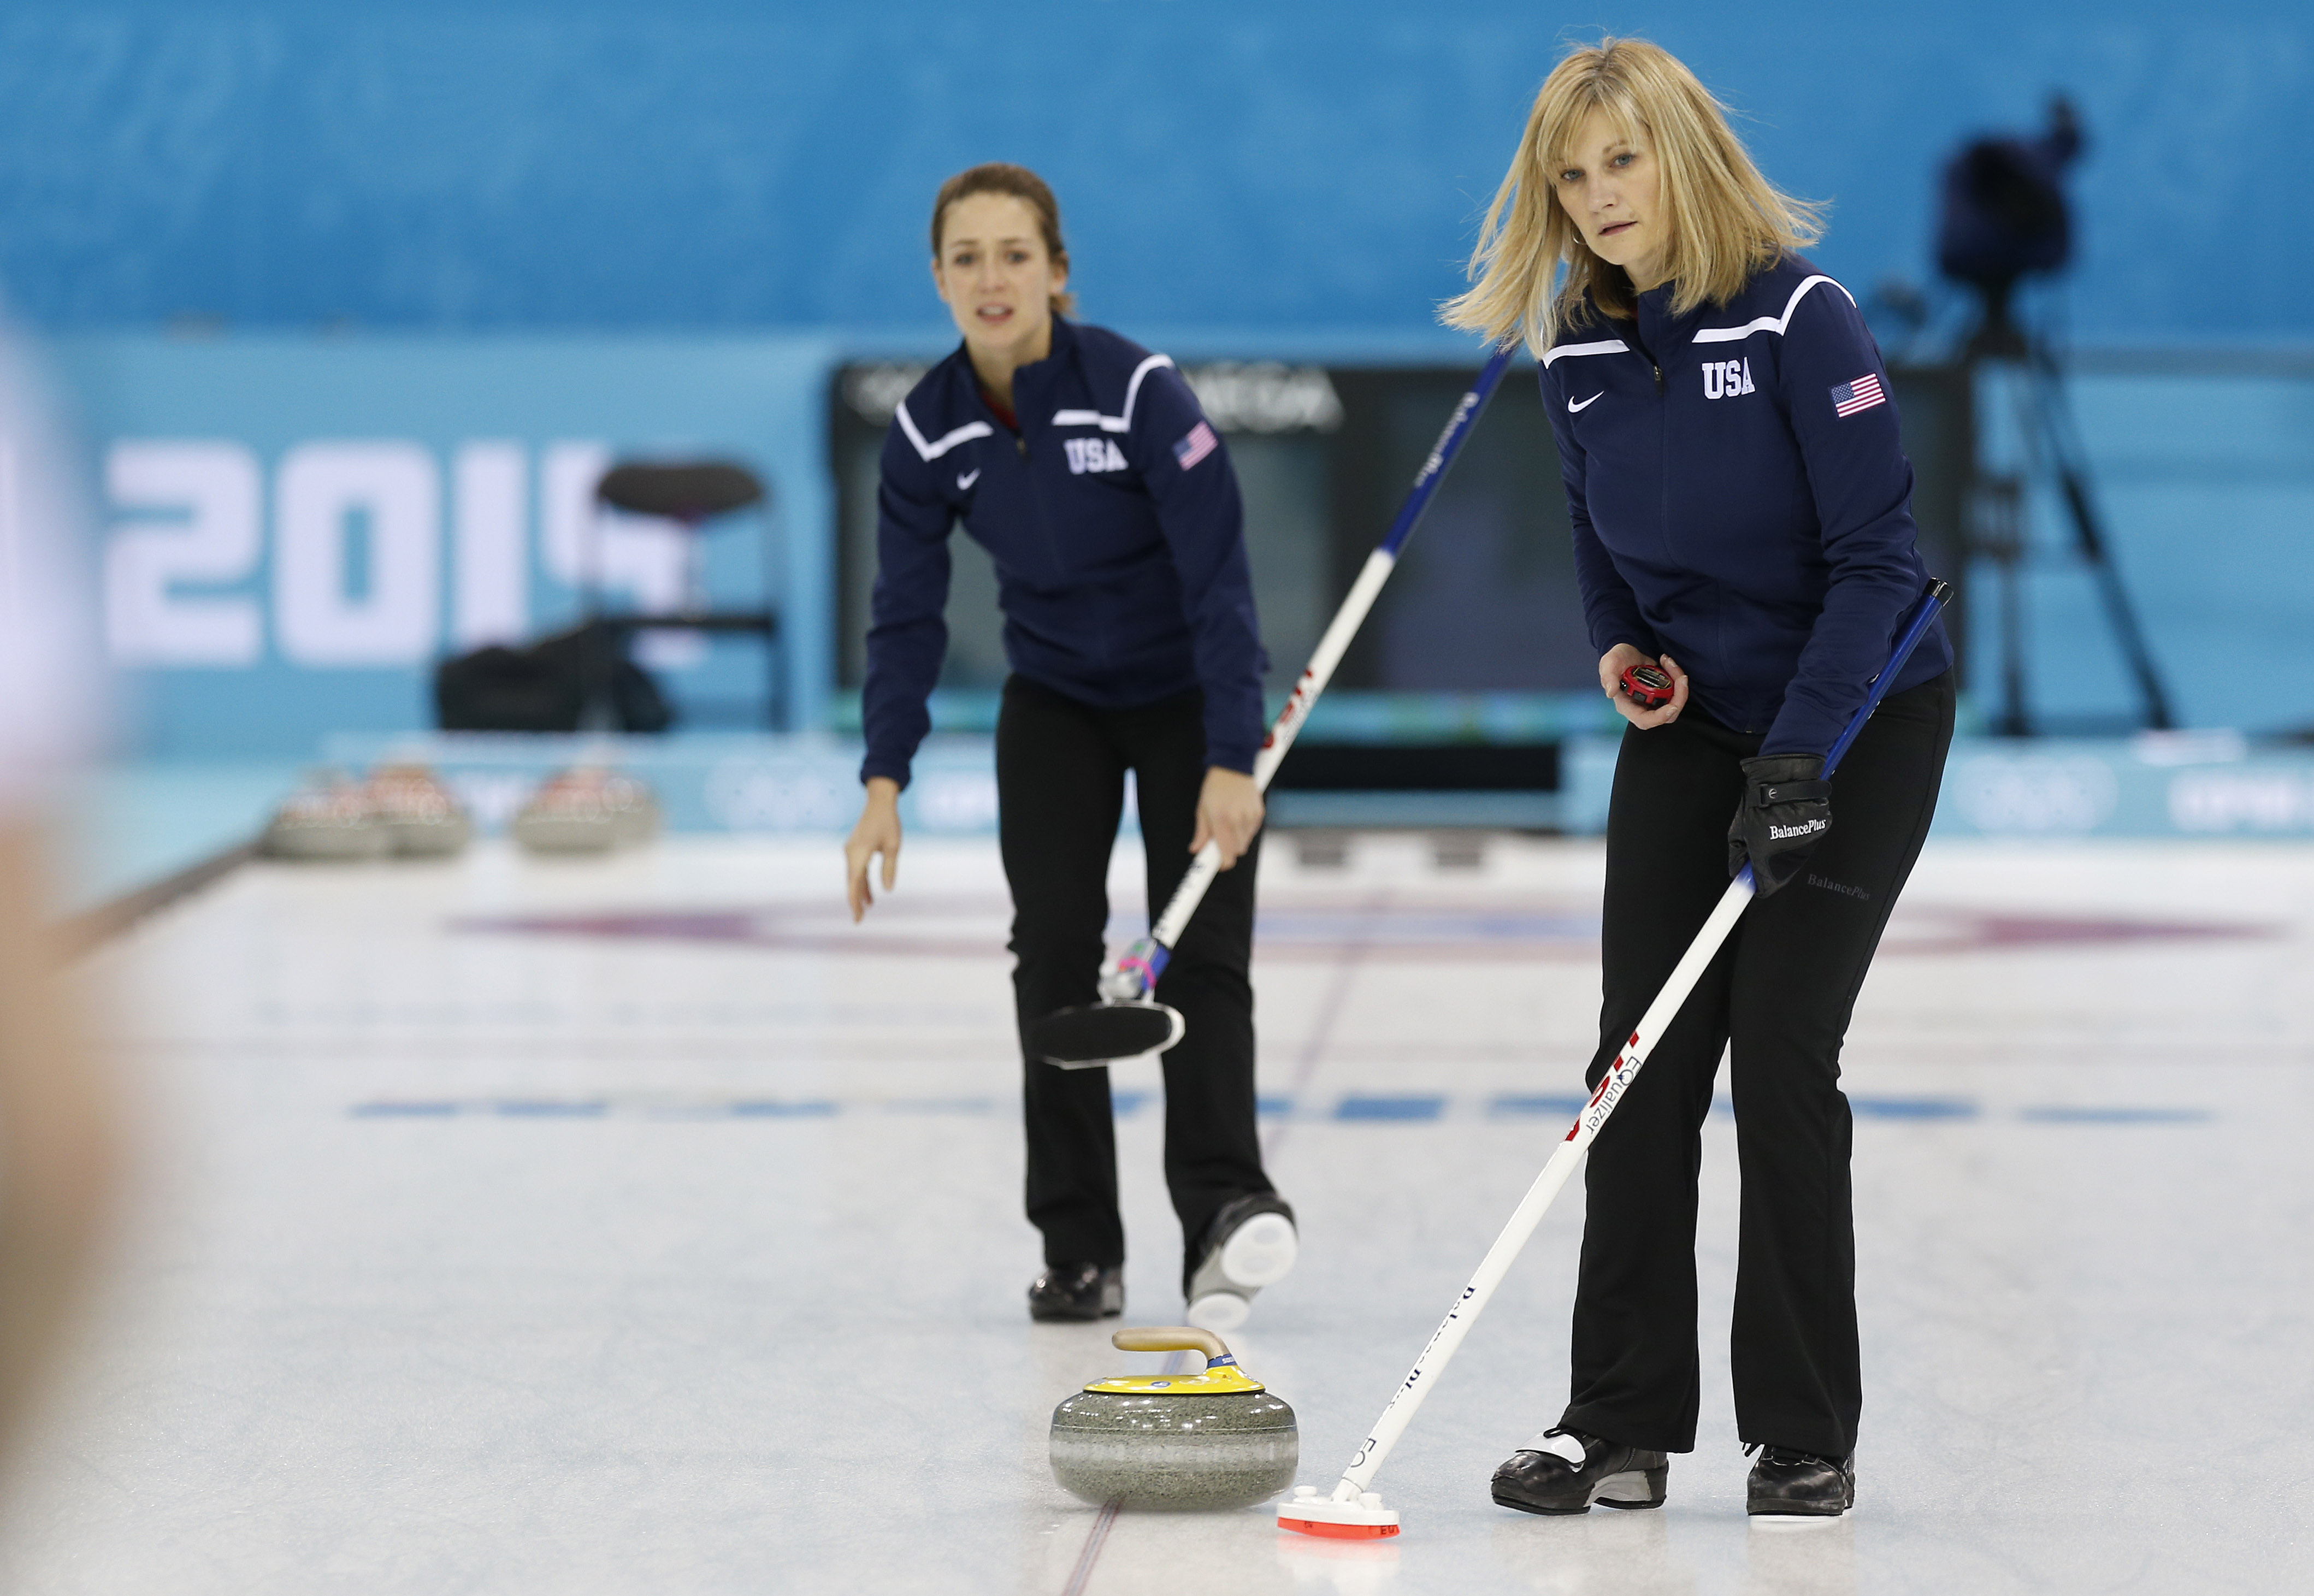 Team USA skip Erika Brown, right, uses a stopwatch to time the throw from teammate Jessica Schultz during the first day of curling training at the 2014 Winter Olympics, Saturday, Feb. 8, 2014, in Sochi, Russia. (AP Photo/Robert F. Bukaty)